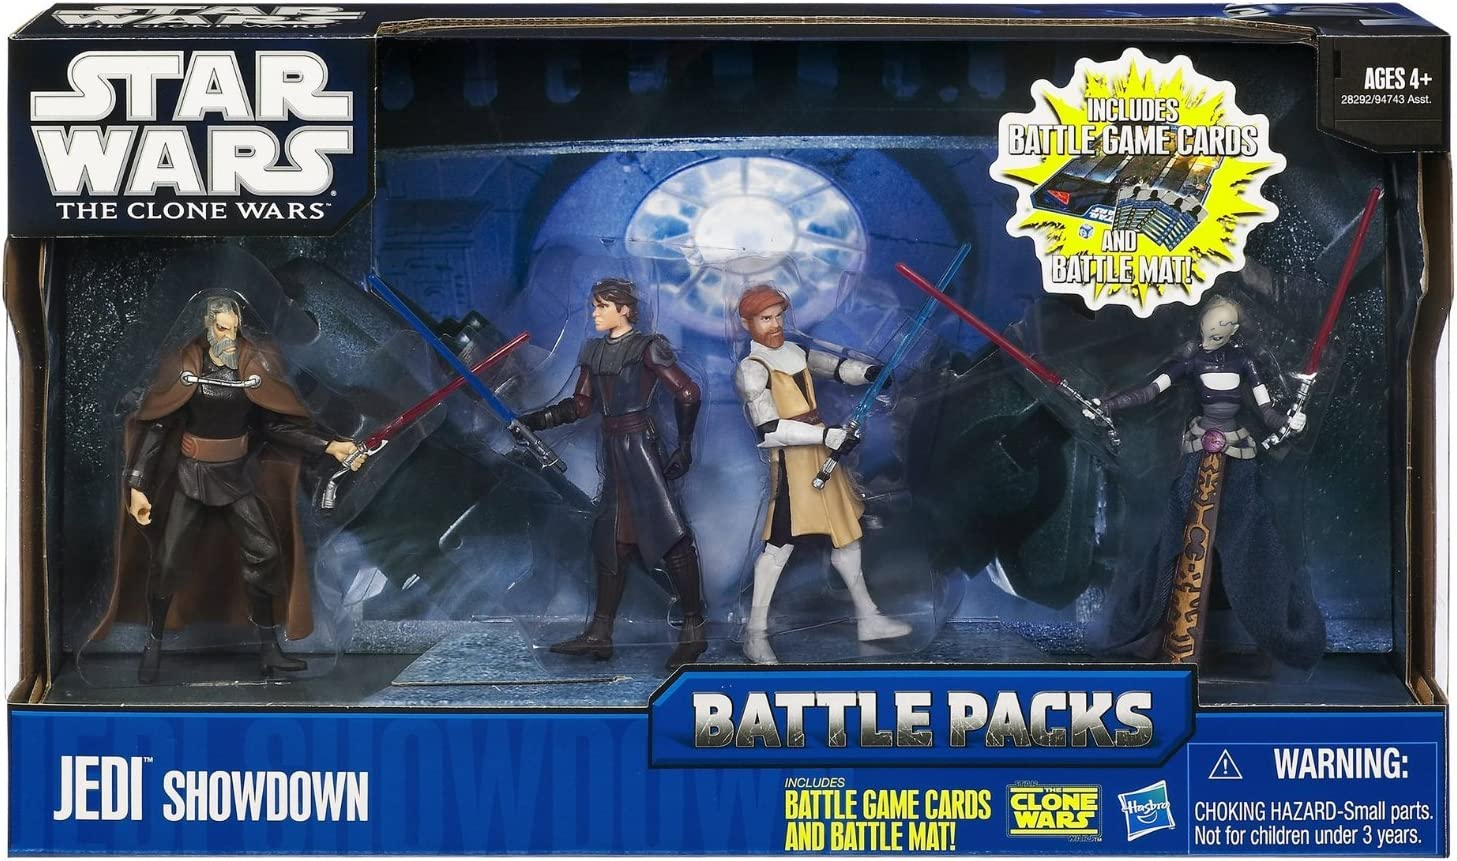 Hasbro Star Wars Battle Pack Jedi Showdown - Surtido de figuras de ...